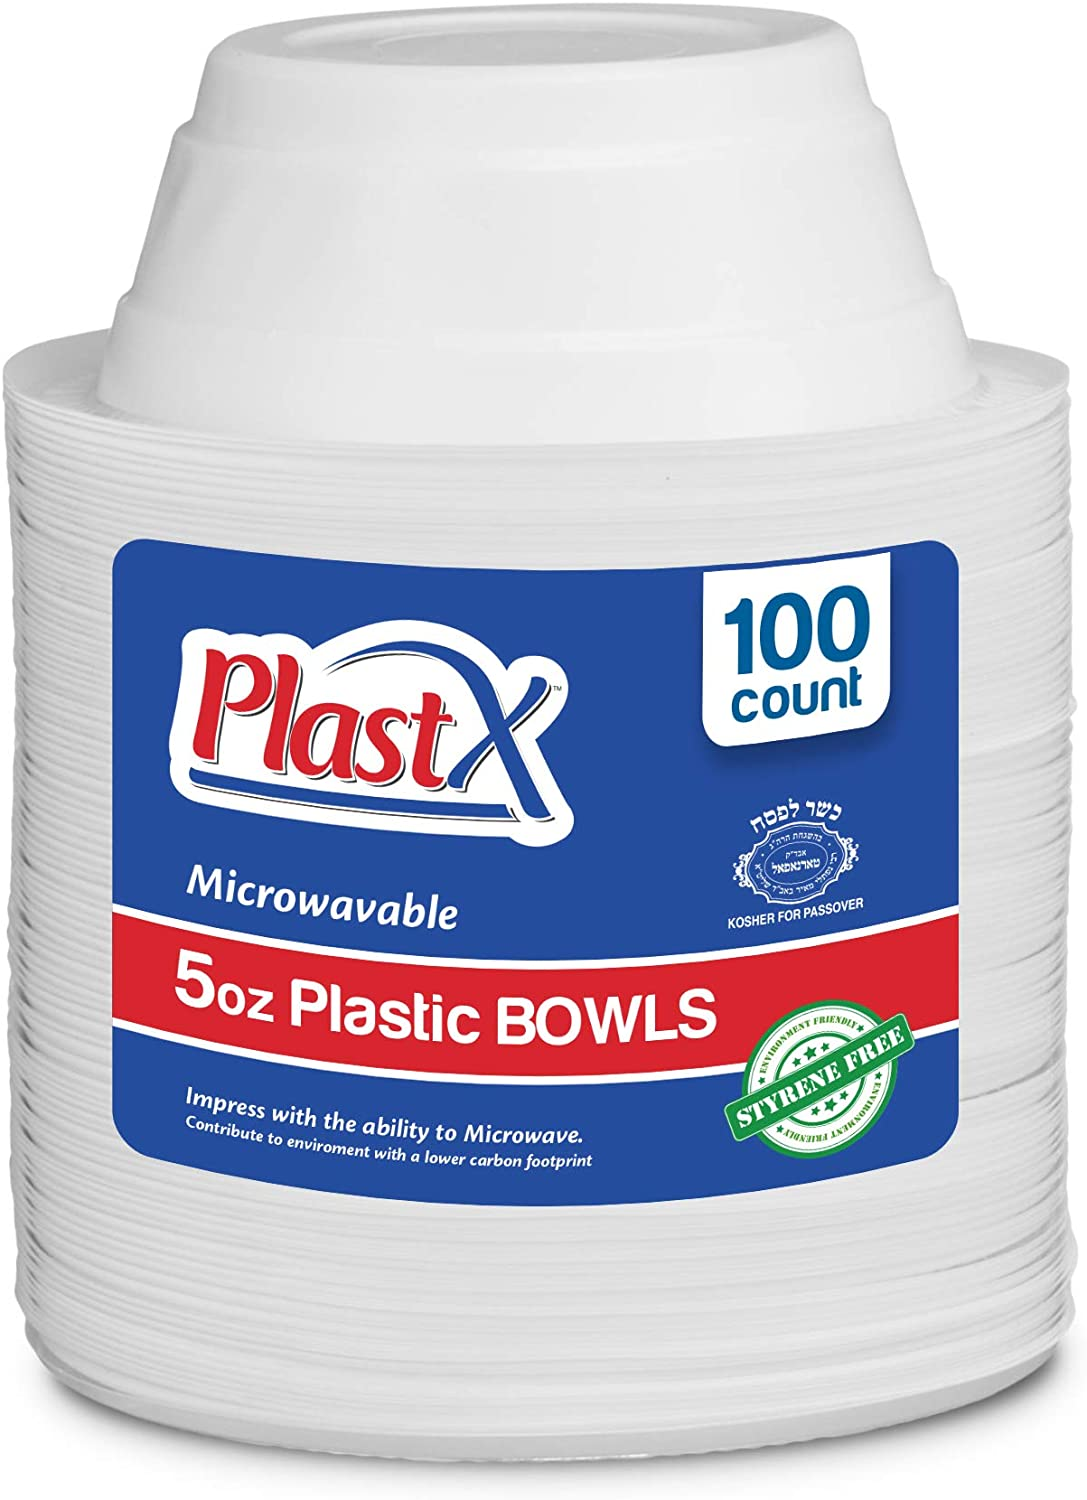 100 Count, PlastX Disposable 5oz White Plastic Dinnerware Dessert Bowls, Microwavable, Great For Home, Office, Wedding, Parties, or Everyday Use, 1 Pack